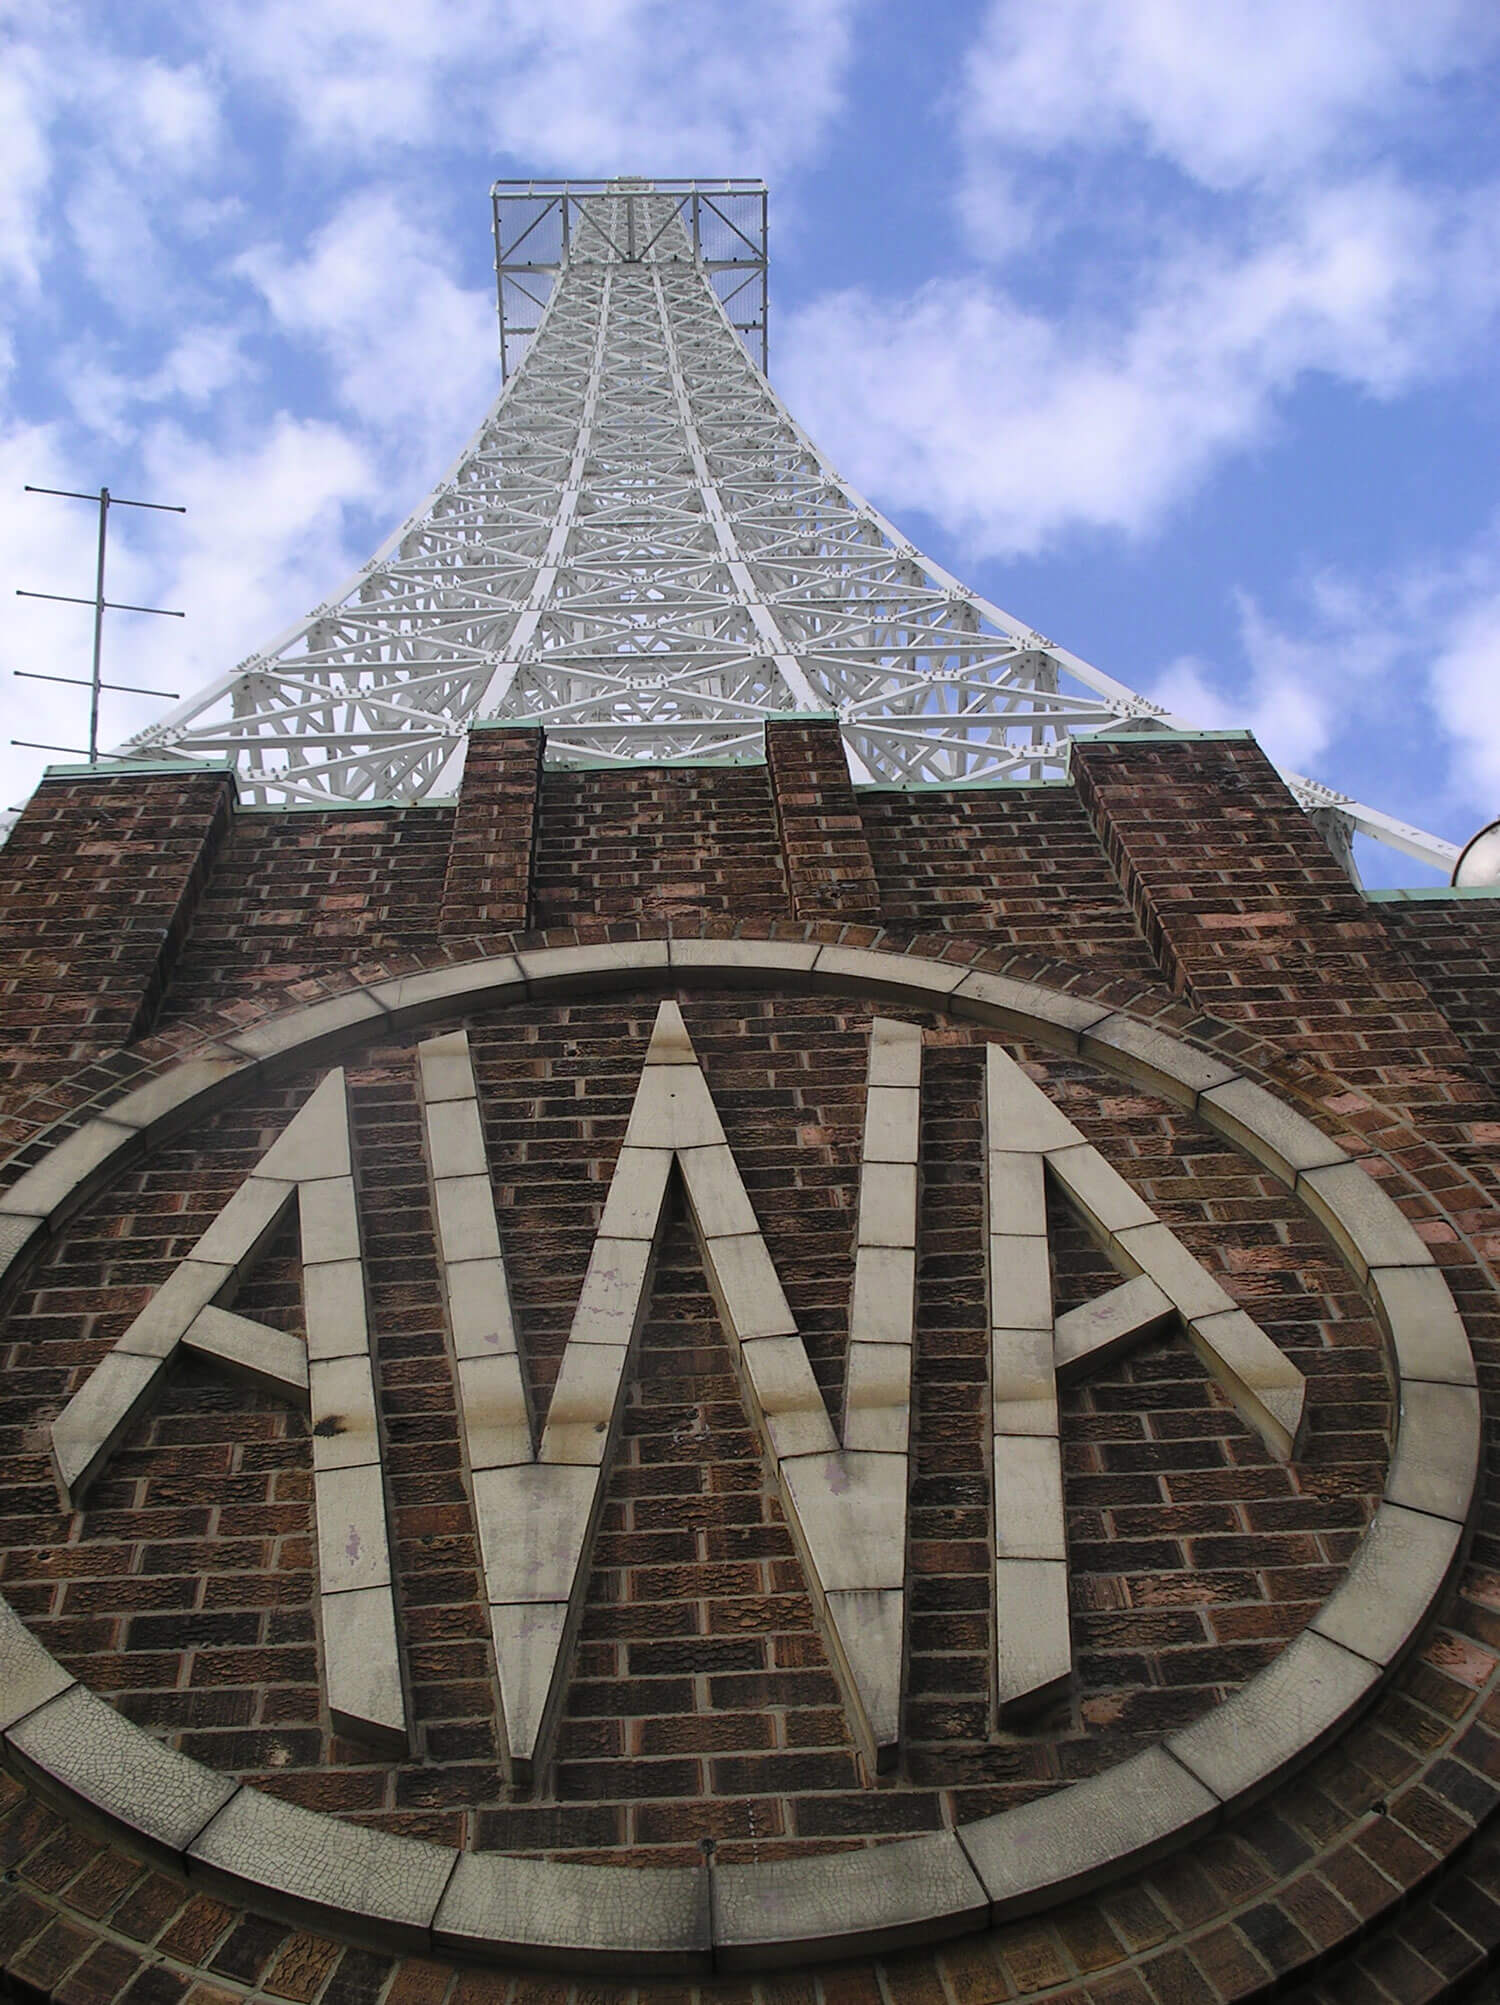 AWA Tower Sydney Close up - Building Facade - Remedial Building Services